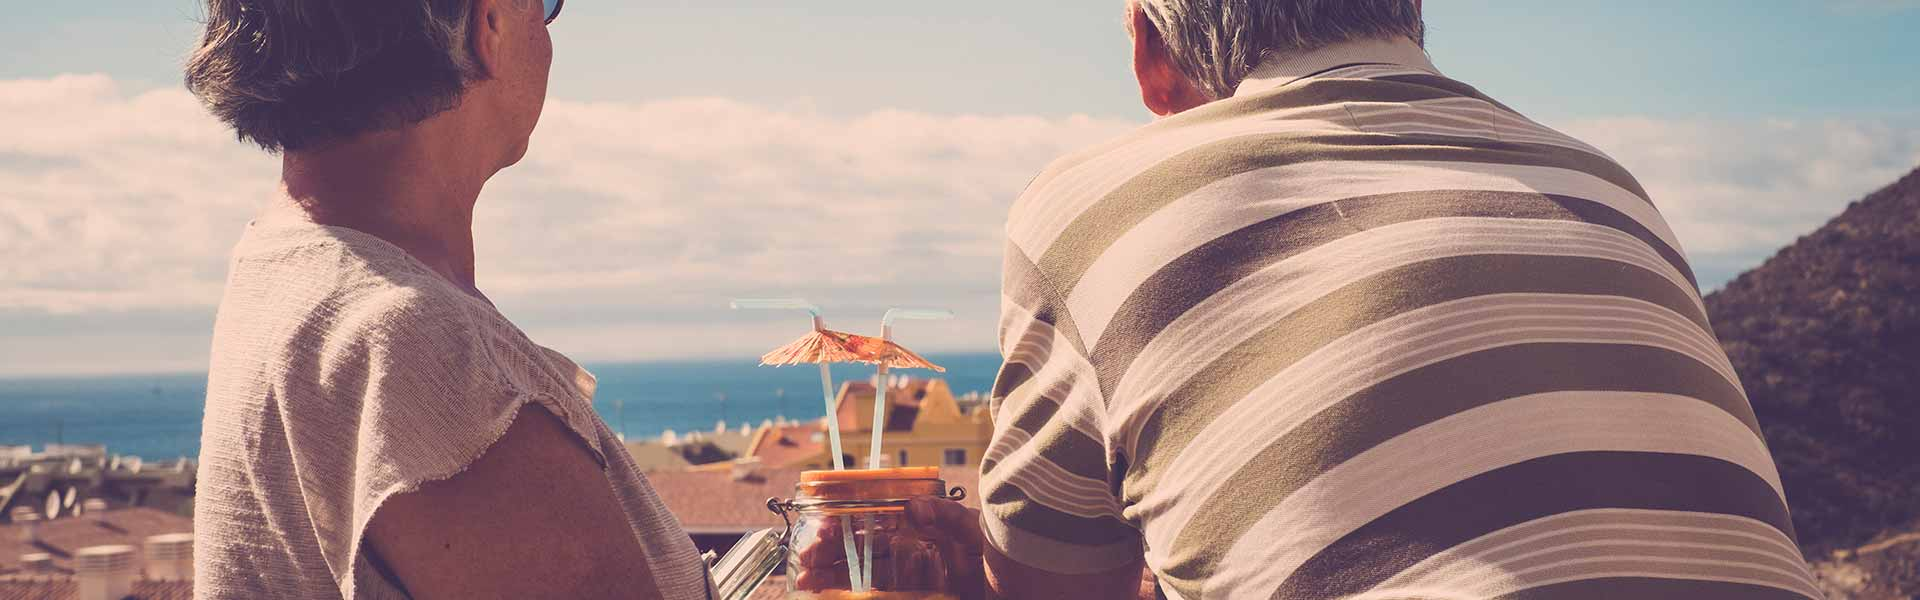 Which Type of Retiree are you or do you want to be?